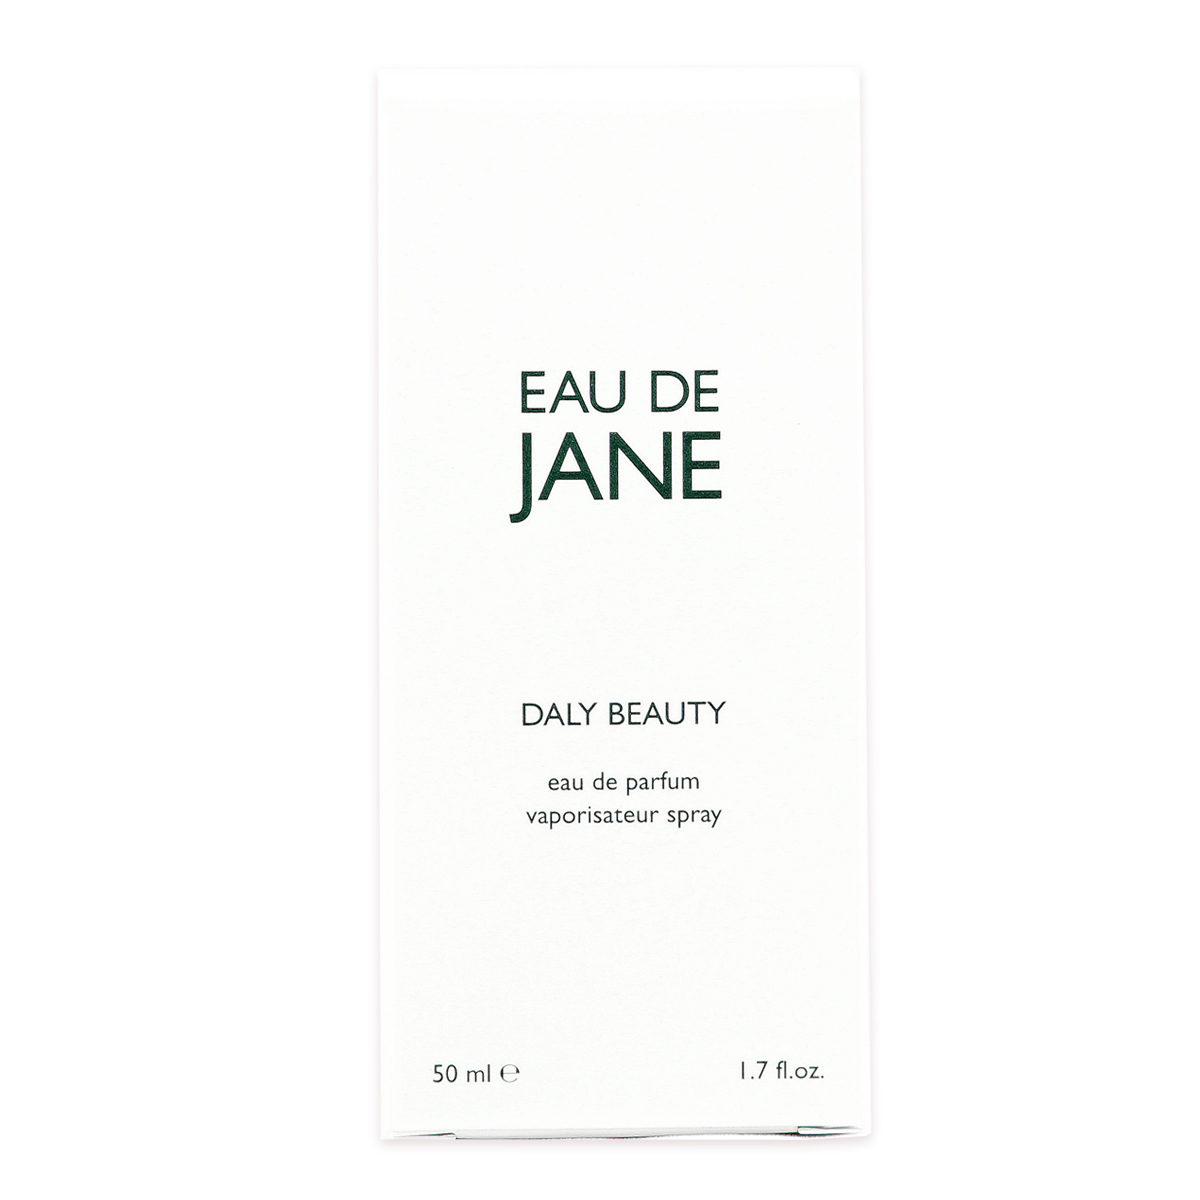 bca32a993291 Eau de Jane Daly Beauty perfume - a new fragrance for women 2019